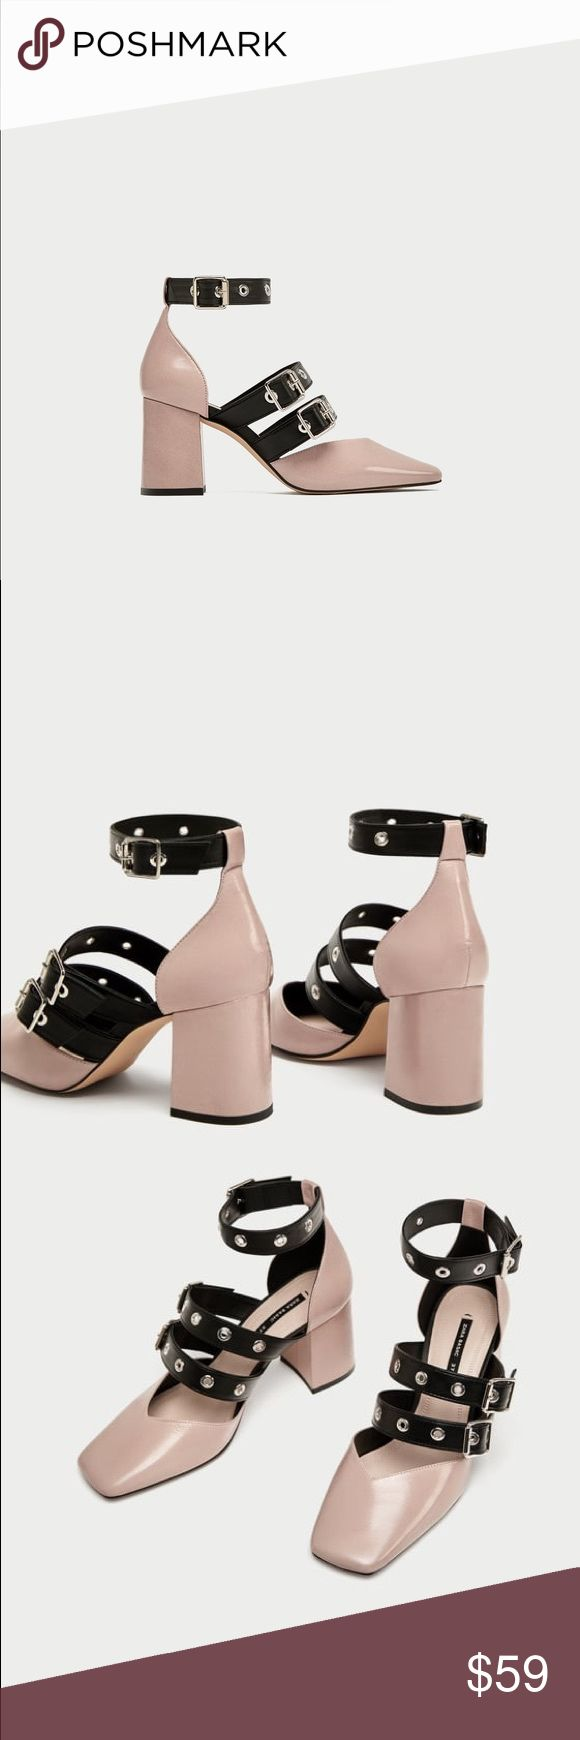 Zara Leather court shoes with buckle NWT. Sz 9 EU 40. Sz 10 EU 41. Fits true to size.  genuine Leather. pink Pumps.square toe.   Pink leather high heel shoes. Contrasting-coloured buckled straps on the instep and ankle and squared toes. The insole Measures 10.5 inches approx.  Heel height of 7,5 cm. / 2.9″ Zara Shoes Heels